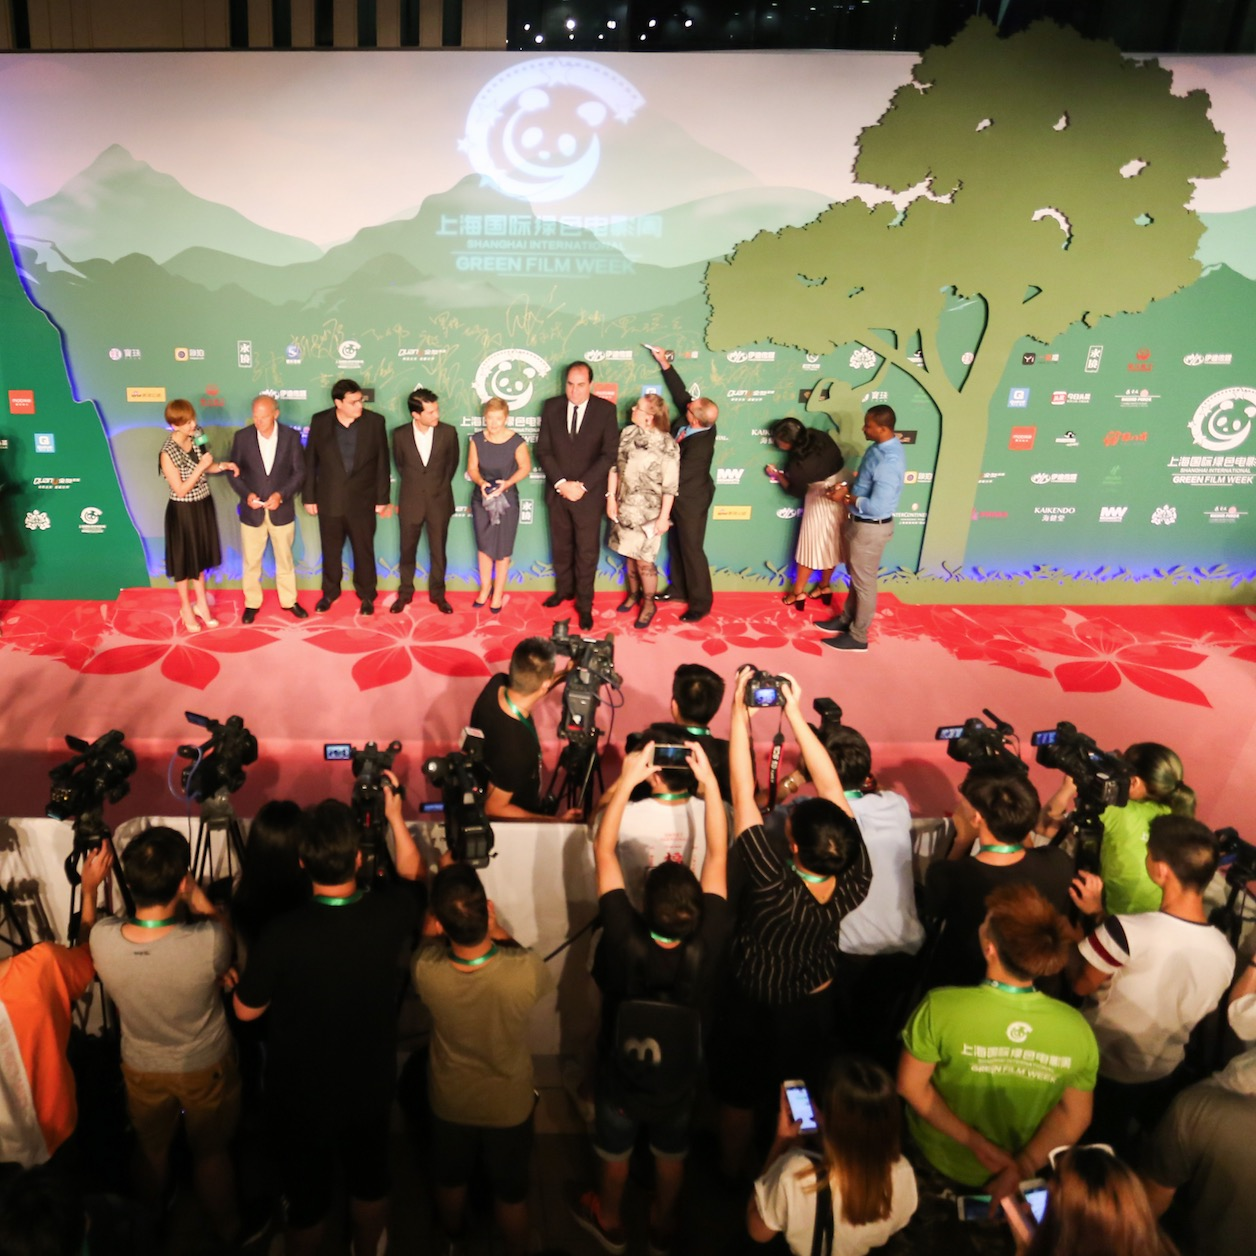 Wonderful review of 2017 International Green Film Week